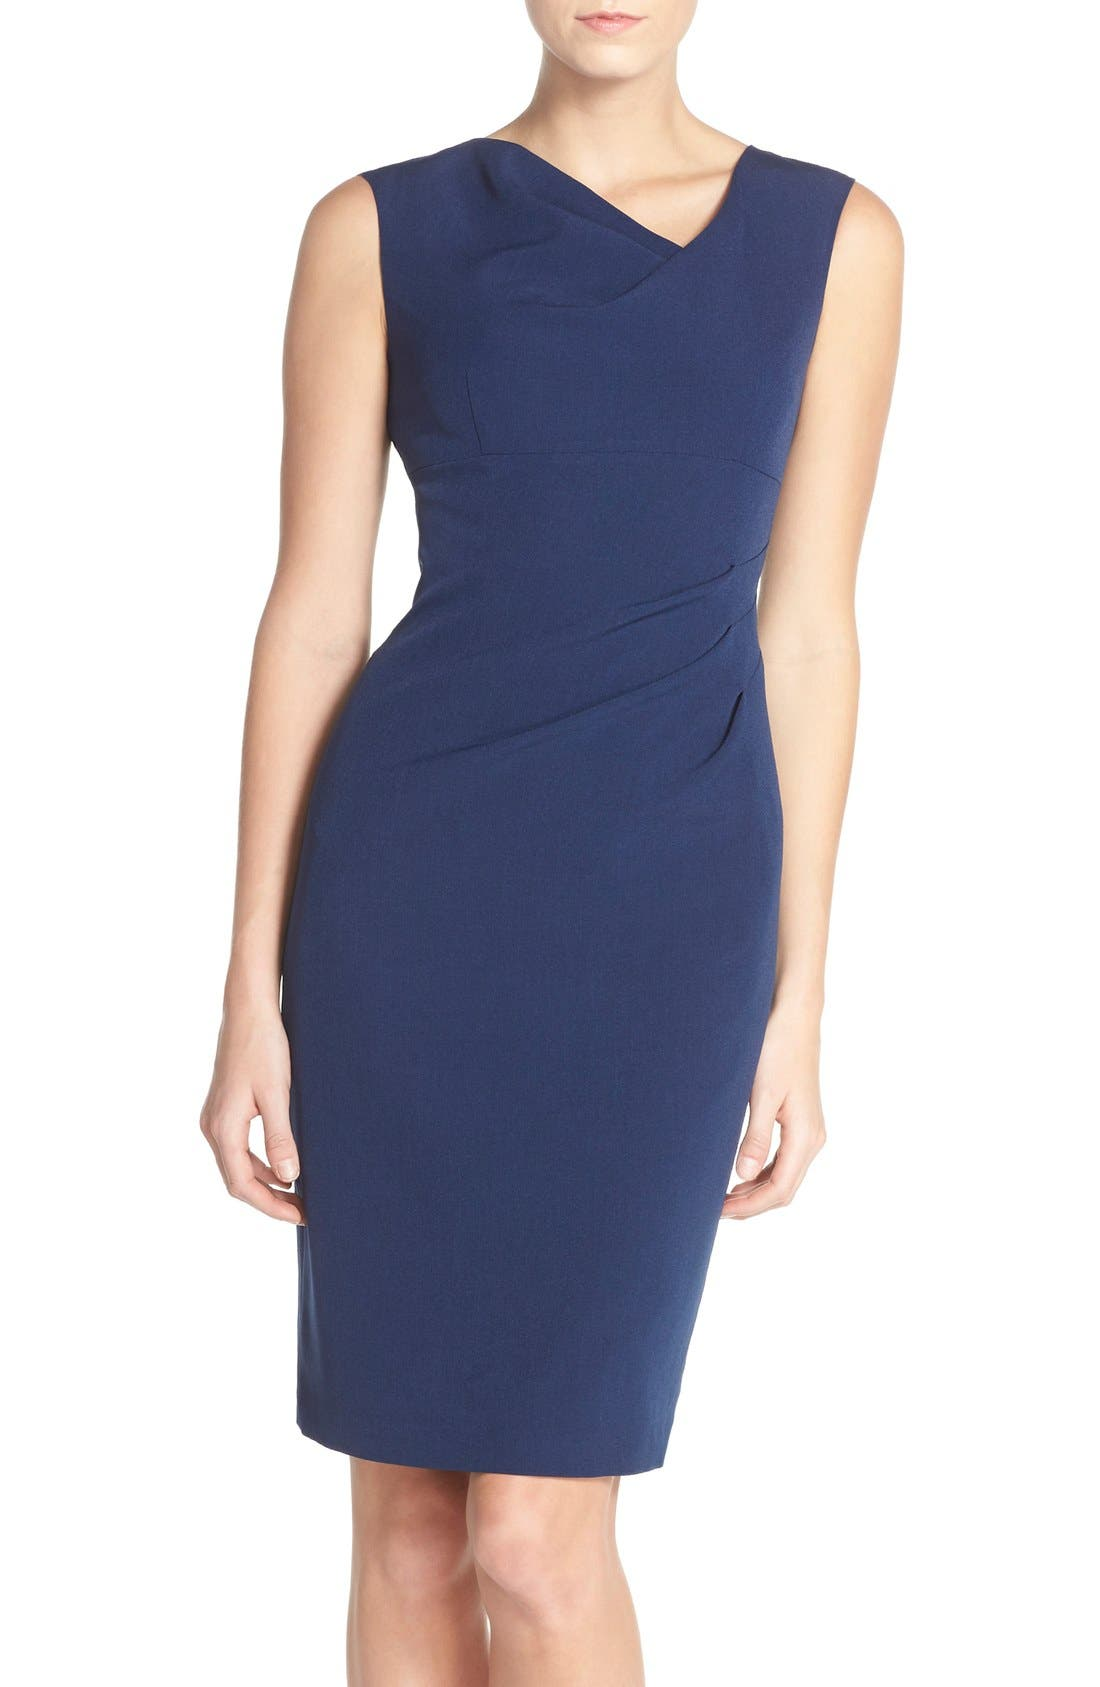 Alternate Image 1 Selected - Adrianna Papell Drape Neck Crepe Sheath Dress